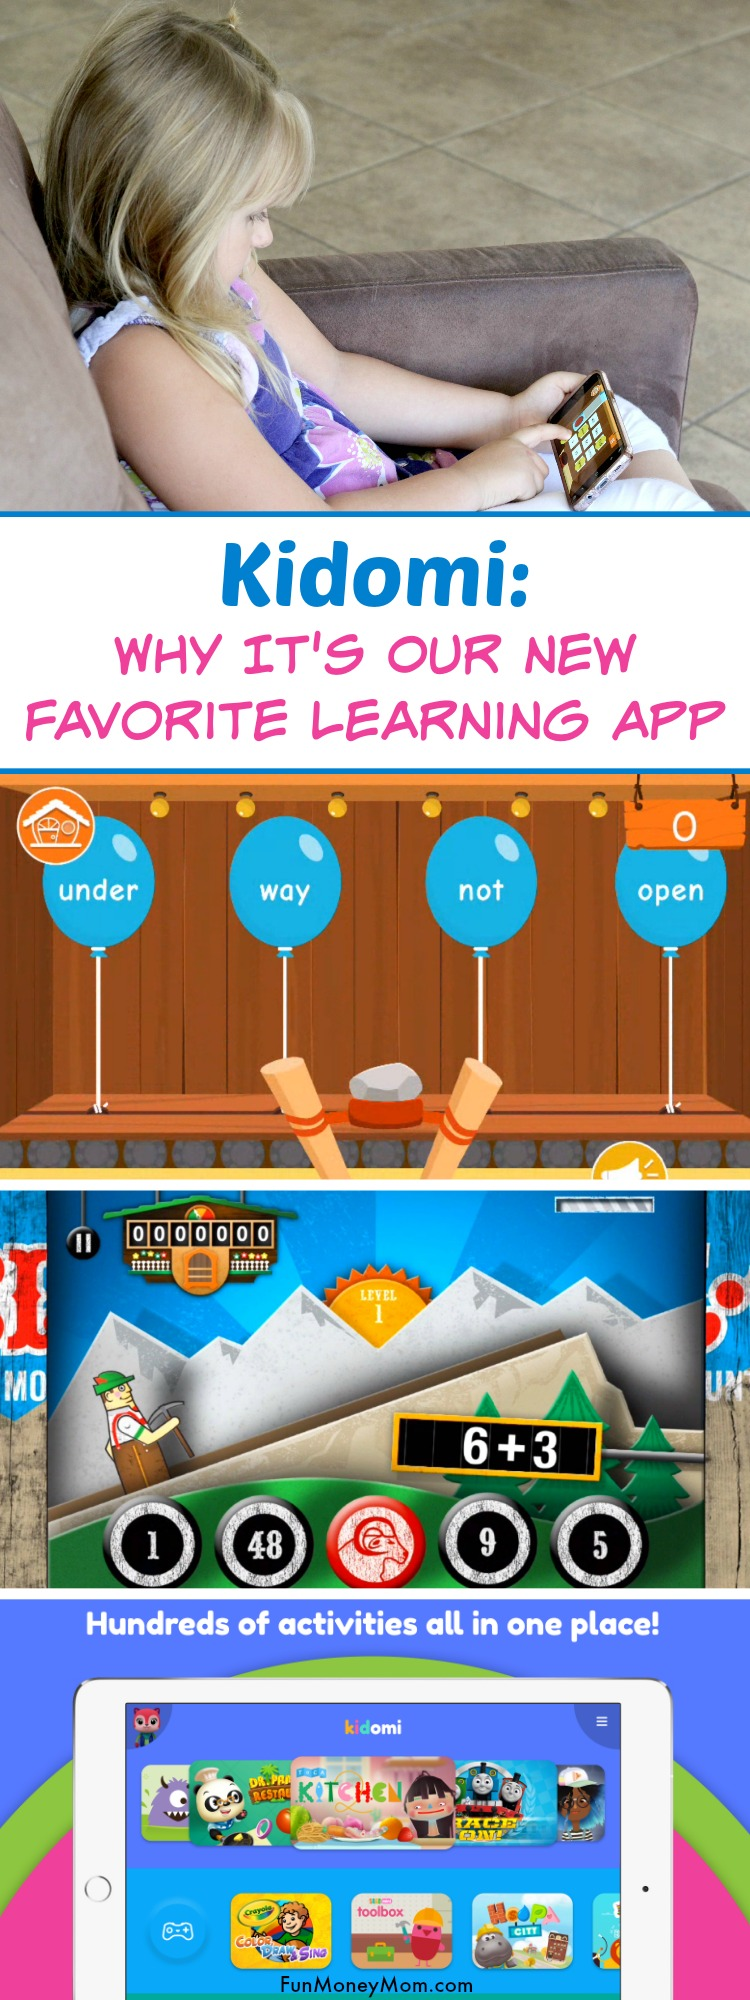 Kidomi Learning App - This educational app is a favorite for moms because it teaches important math and reading skills. Kids just love it for the fun games. #KidomiApp #ad